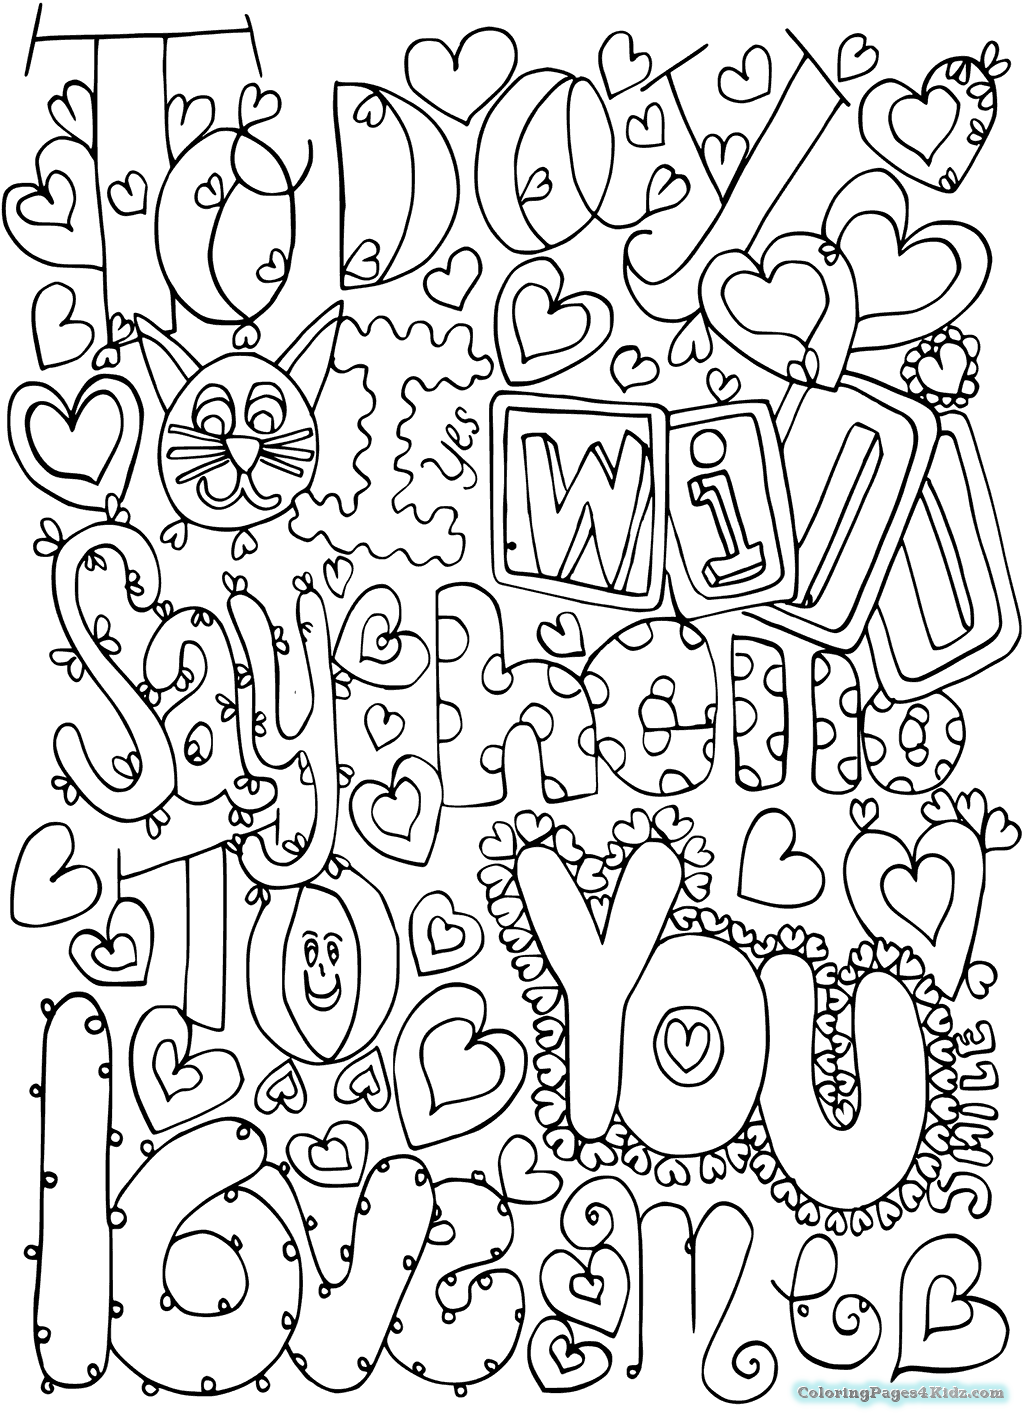 coloring pages for kids hard hard coloring pages for adults best coloring pages for kids pages kids hard coloring for